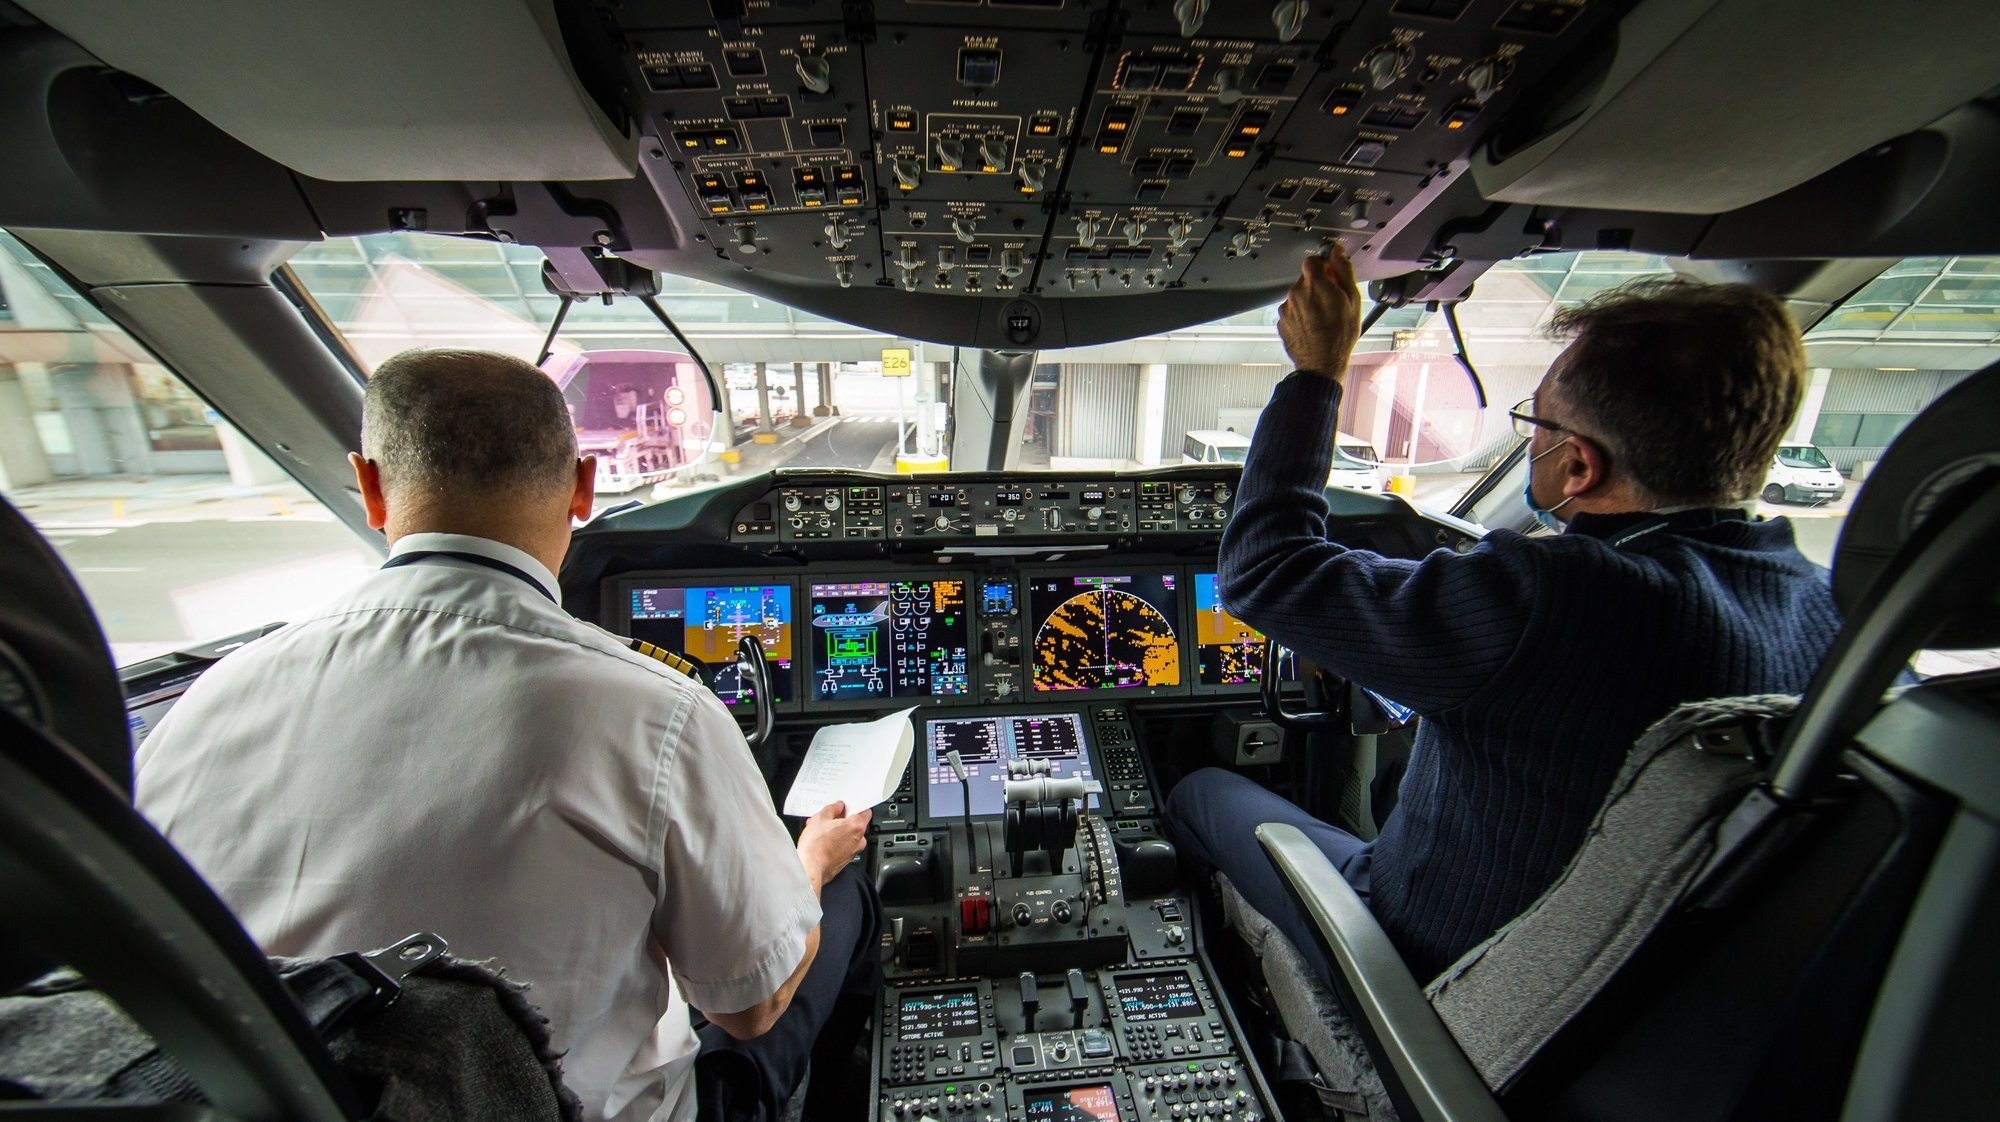 epa09130179 Air France pilots prepare for take-off in the cockpit of a Boeing 787 carrying refrigerated containers of Chinese SinoVac vaccines to Bogoto, Colombia at Roissy Airport, near Paris, 11 April 2021 (issued 12 April 2021). Airline company Air France KLM Cargo, operated two flies to Cameroon and Colombia with a shipment of Chinese covid19 vaccines SinoPharm and SinoVac through its cargo area of Roissy airport (CDG).  EPA/CHRISTOPHE PETIT TESSON